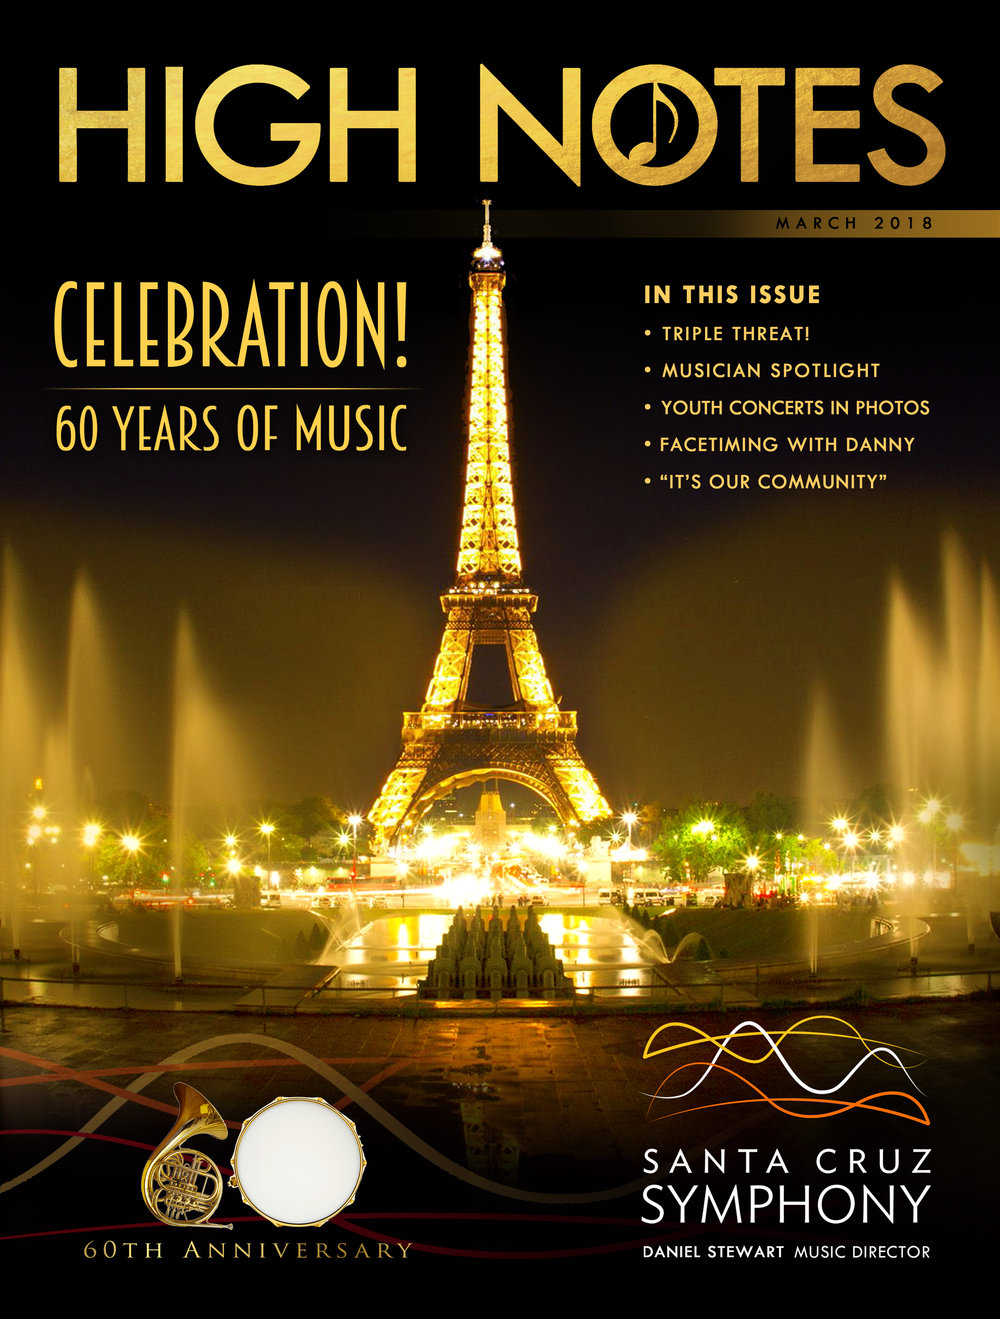 HIGHNOTES  MAR 2018 COVER.jpg